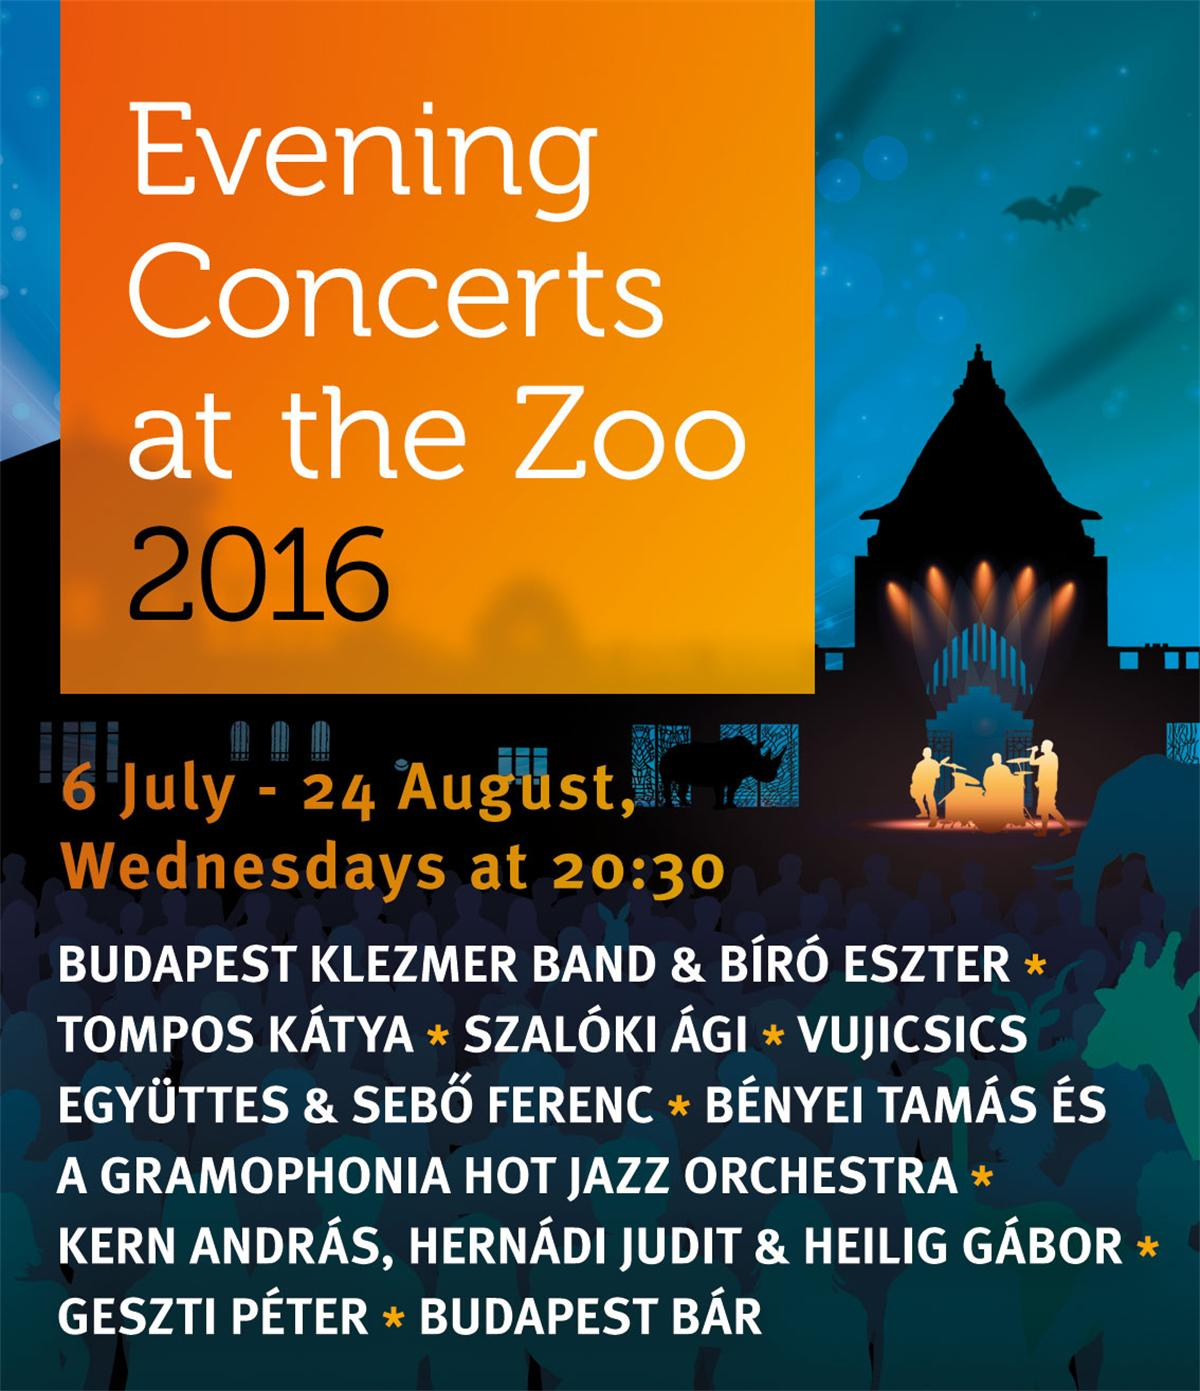 Evening Concerts At Budapest Zoo, 6 July - 24 August